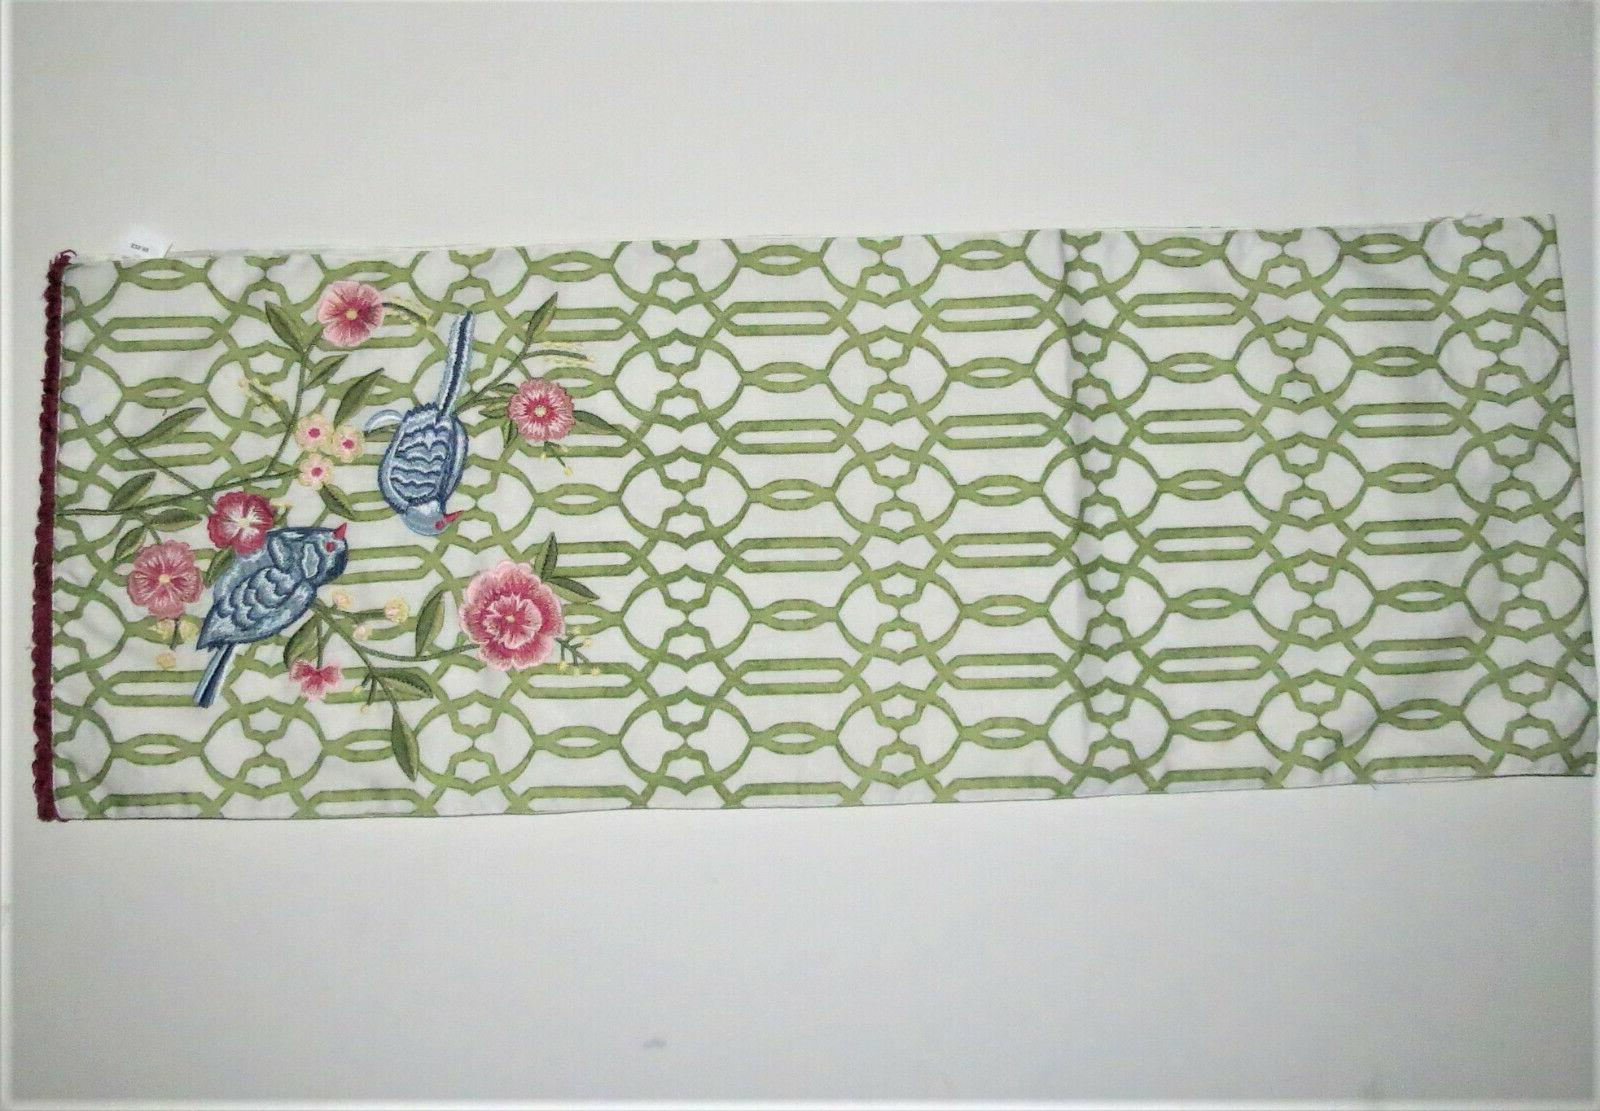 RUNNER FLORAL WITH Decor SPRING